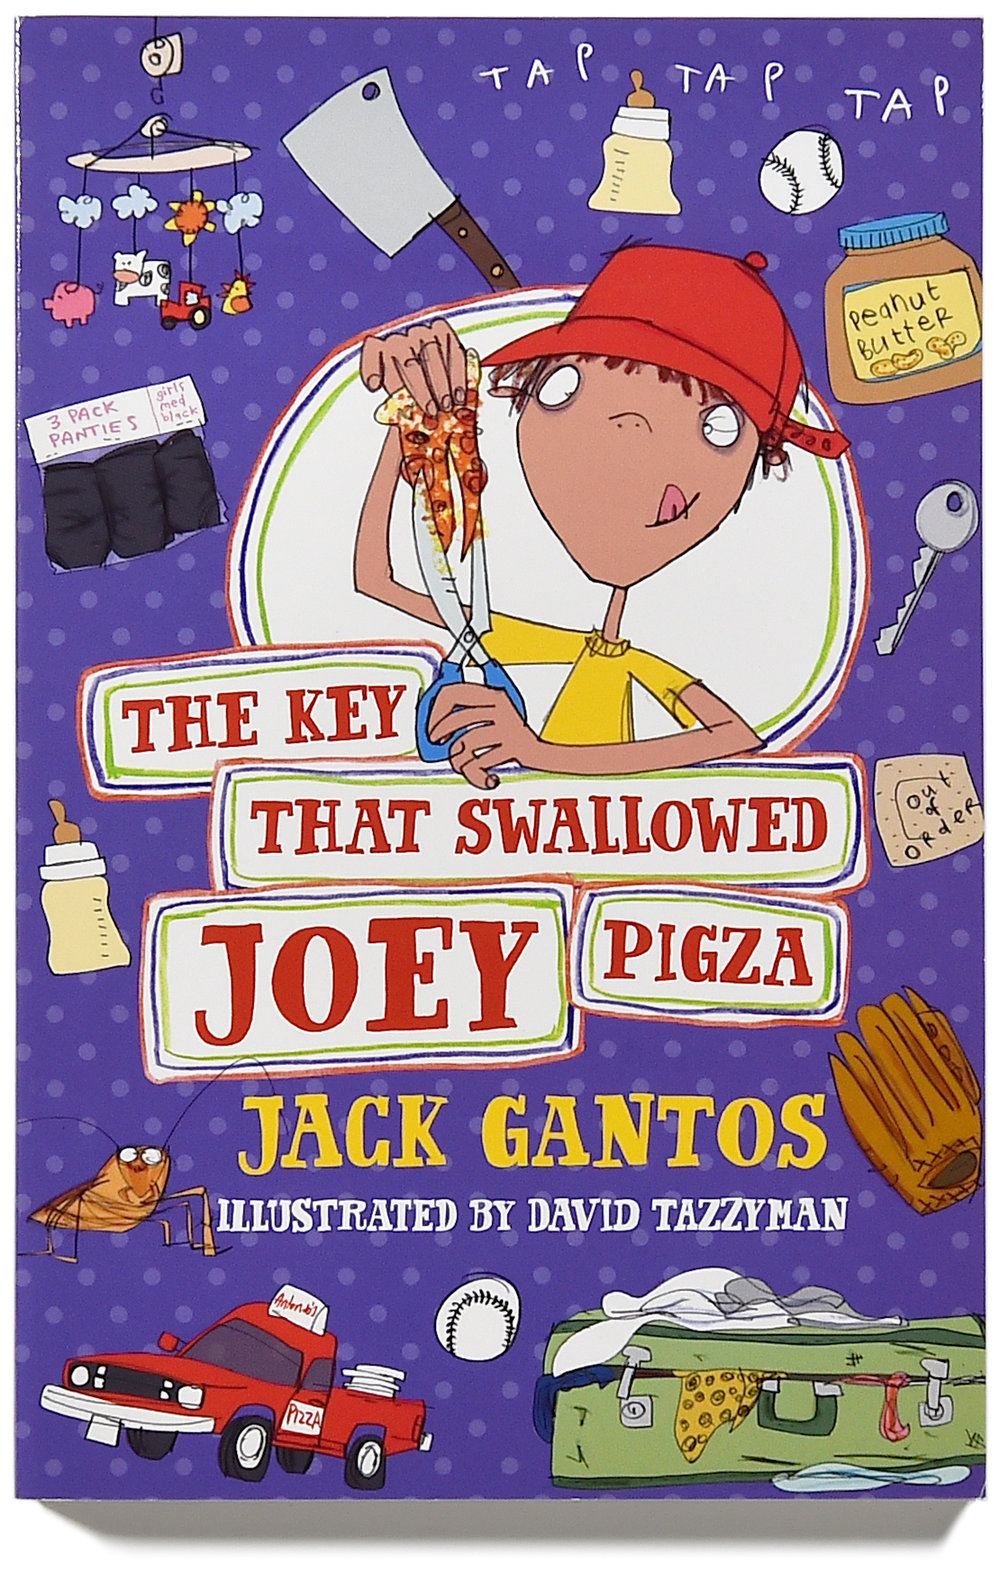 The key that Swallowed Joey Pigza cover.FIN.jpg